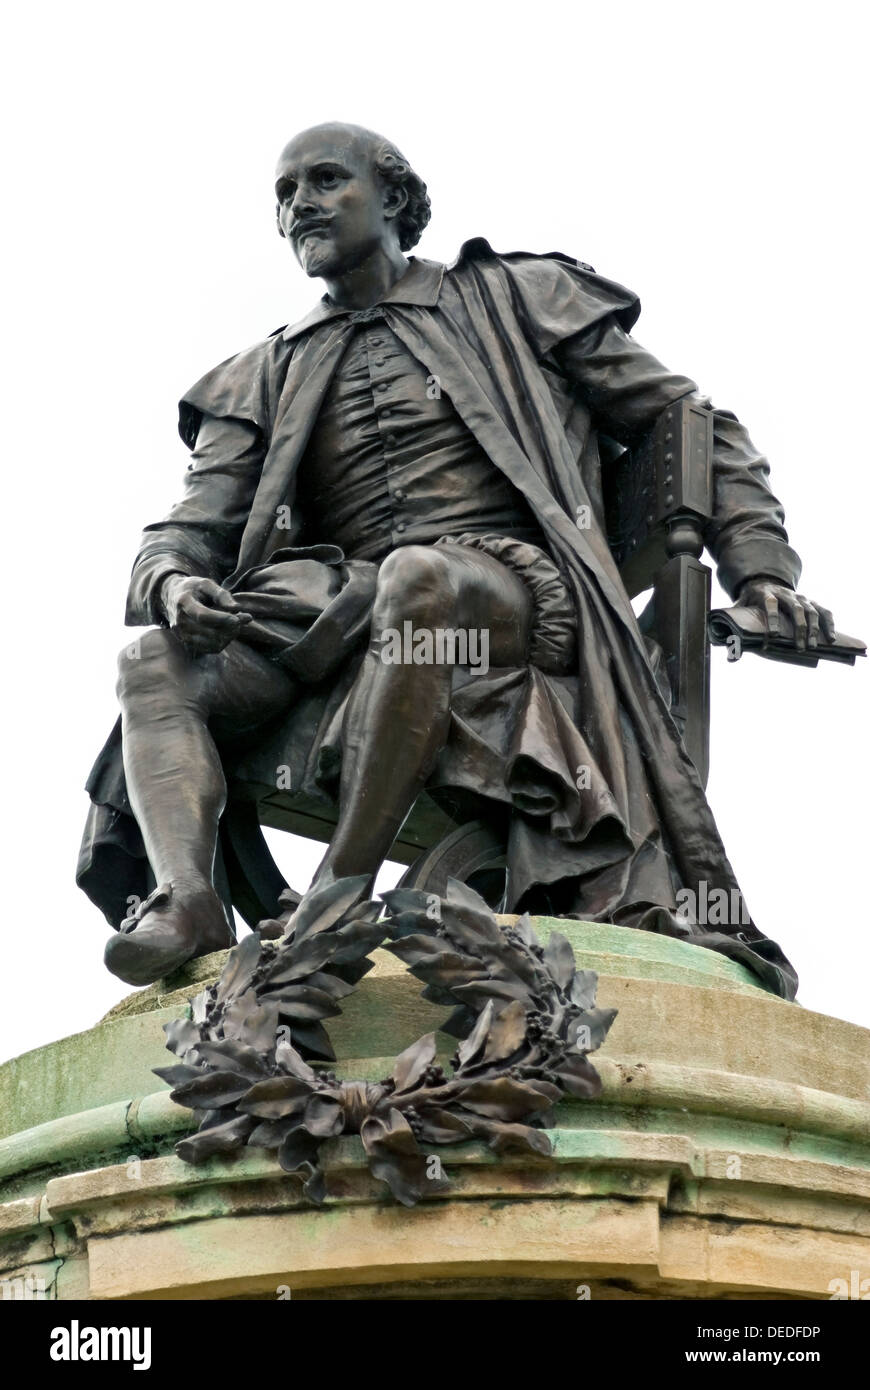 Cut out of the Shakespeare sculpture, Sir Ronald Gower Memorial to Shakespeare in Stratford upon Avon, Warwickshire, England. - Stock Image